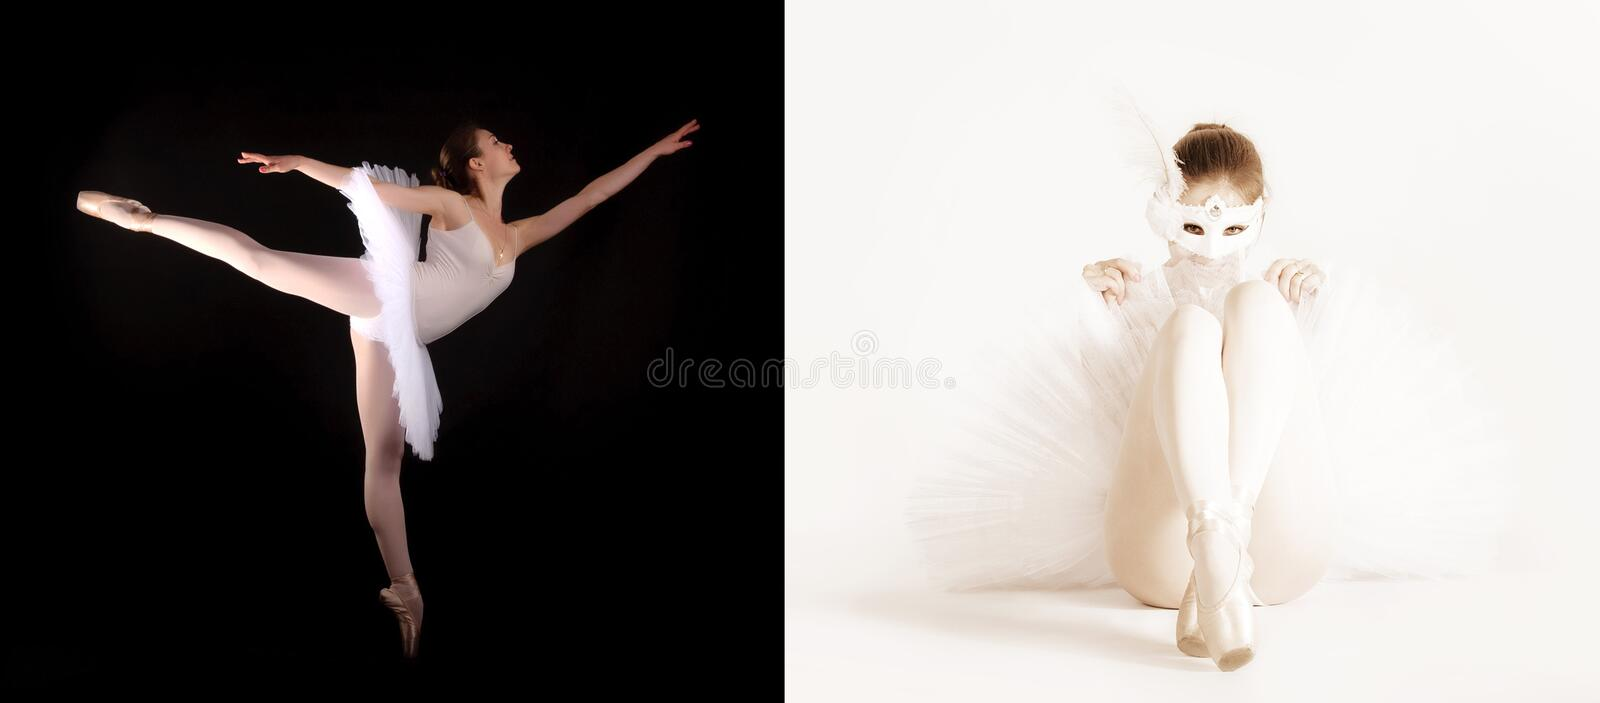 Download Two Ballerinas In A High Key And Low Key Stock Image - Image: 23172675